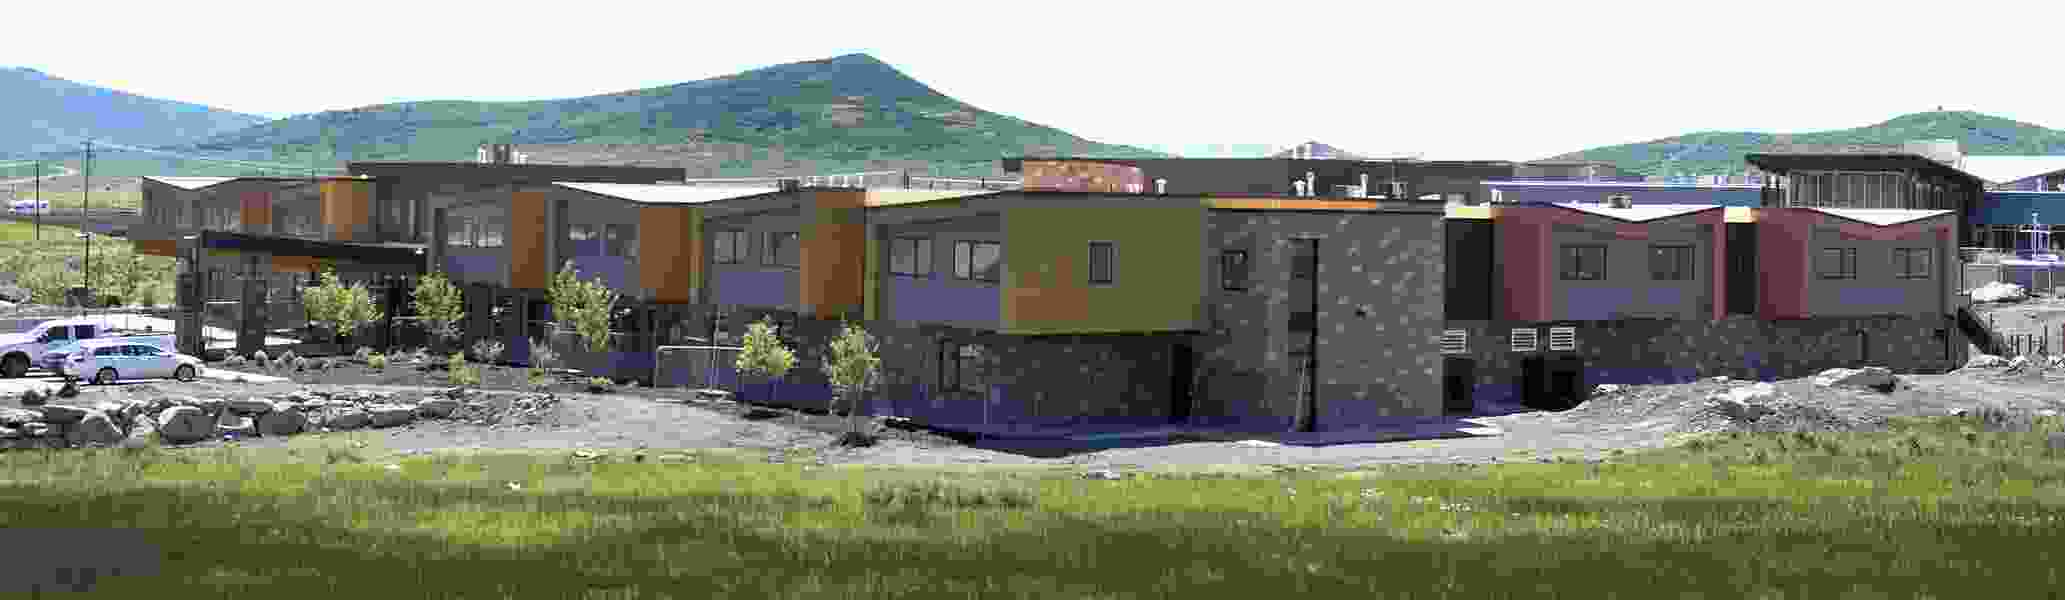 Domestic violence survivors will soon have a new safe haven in Park City